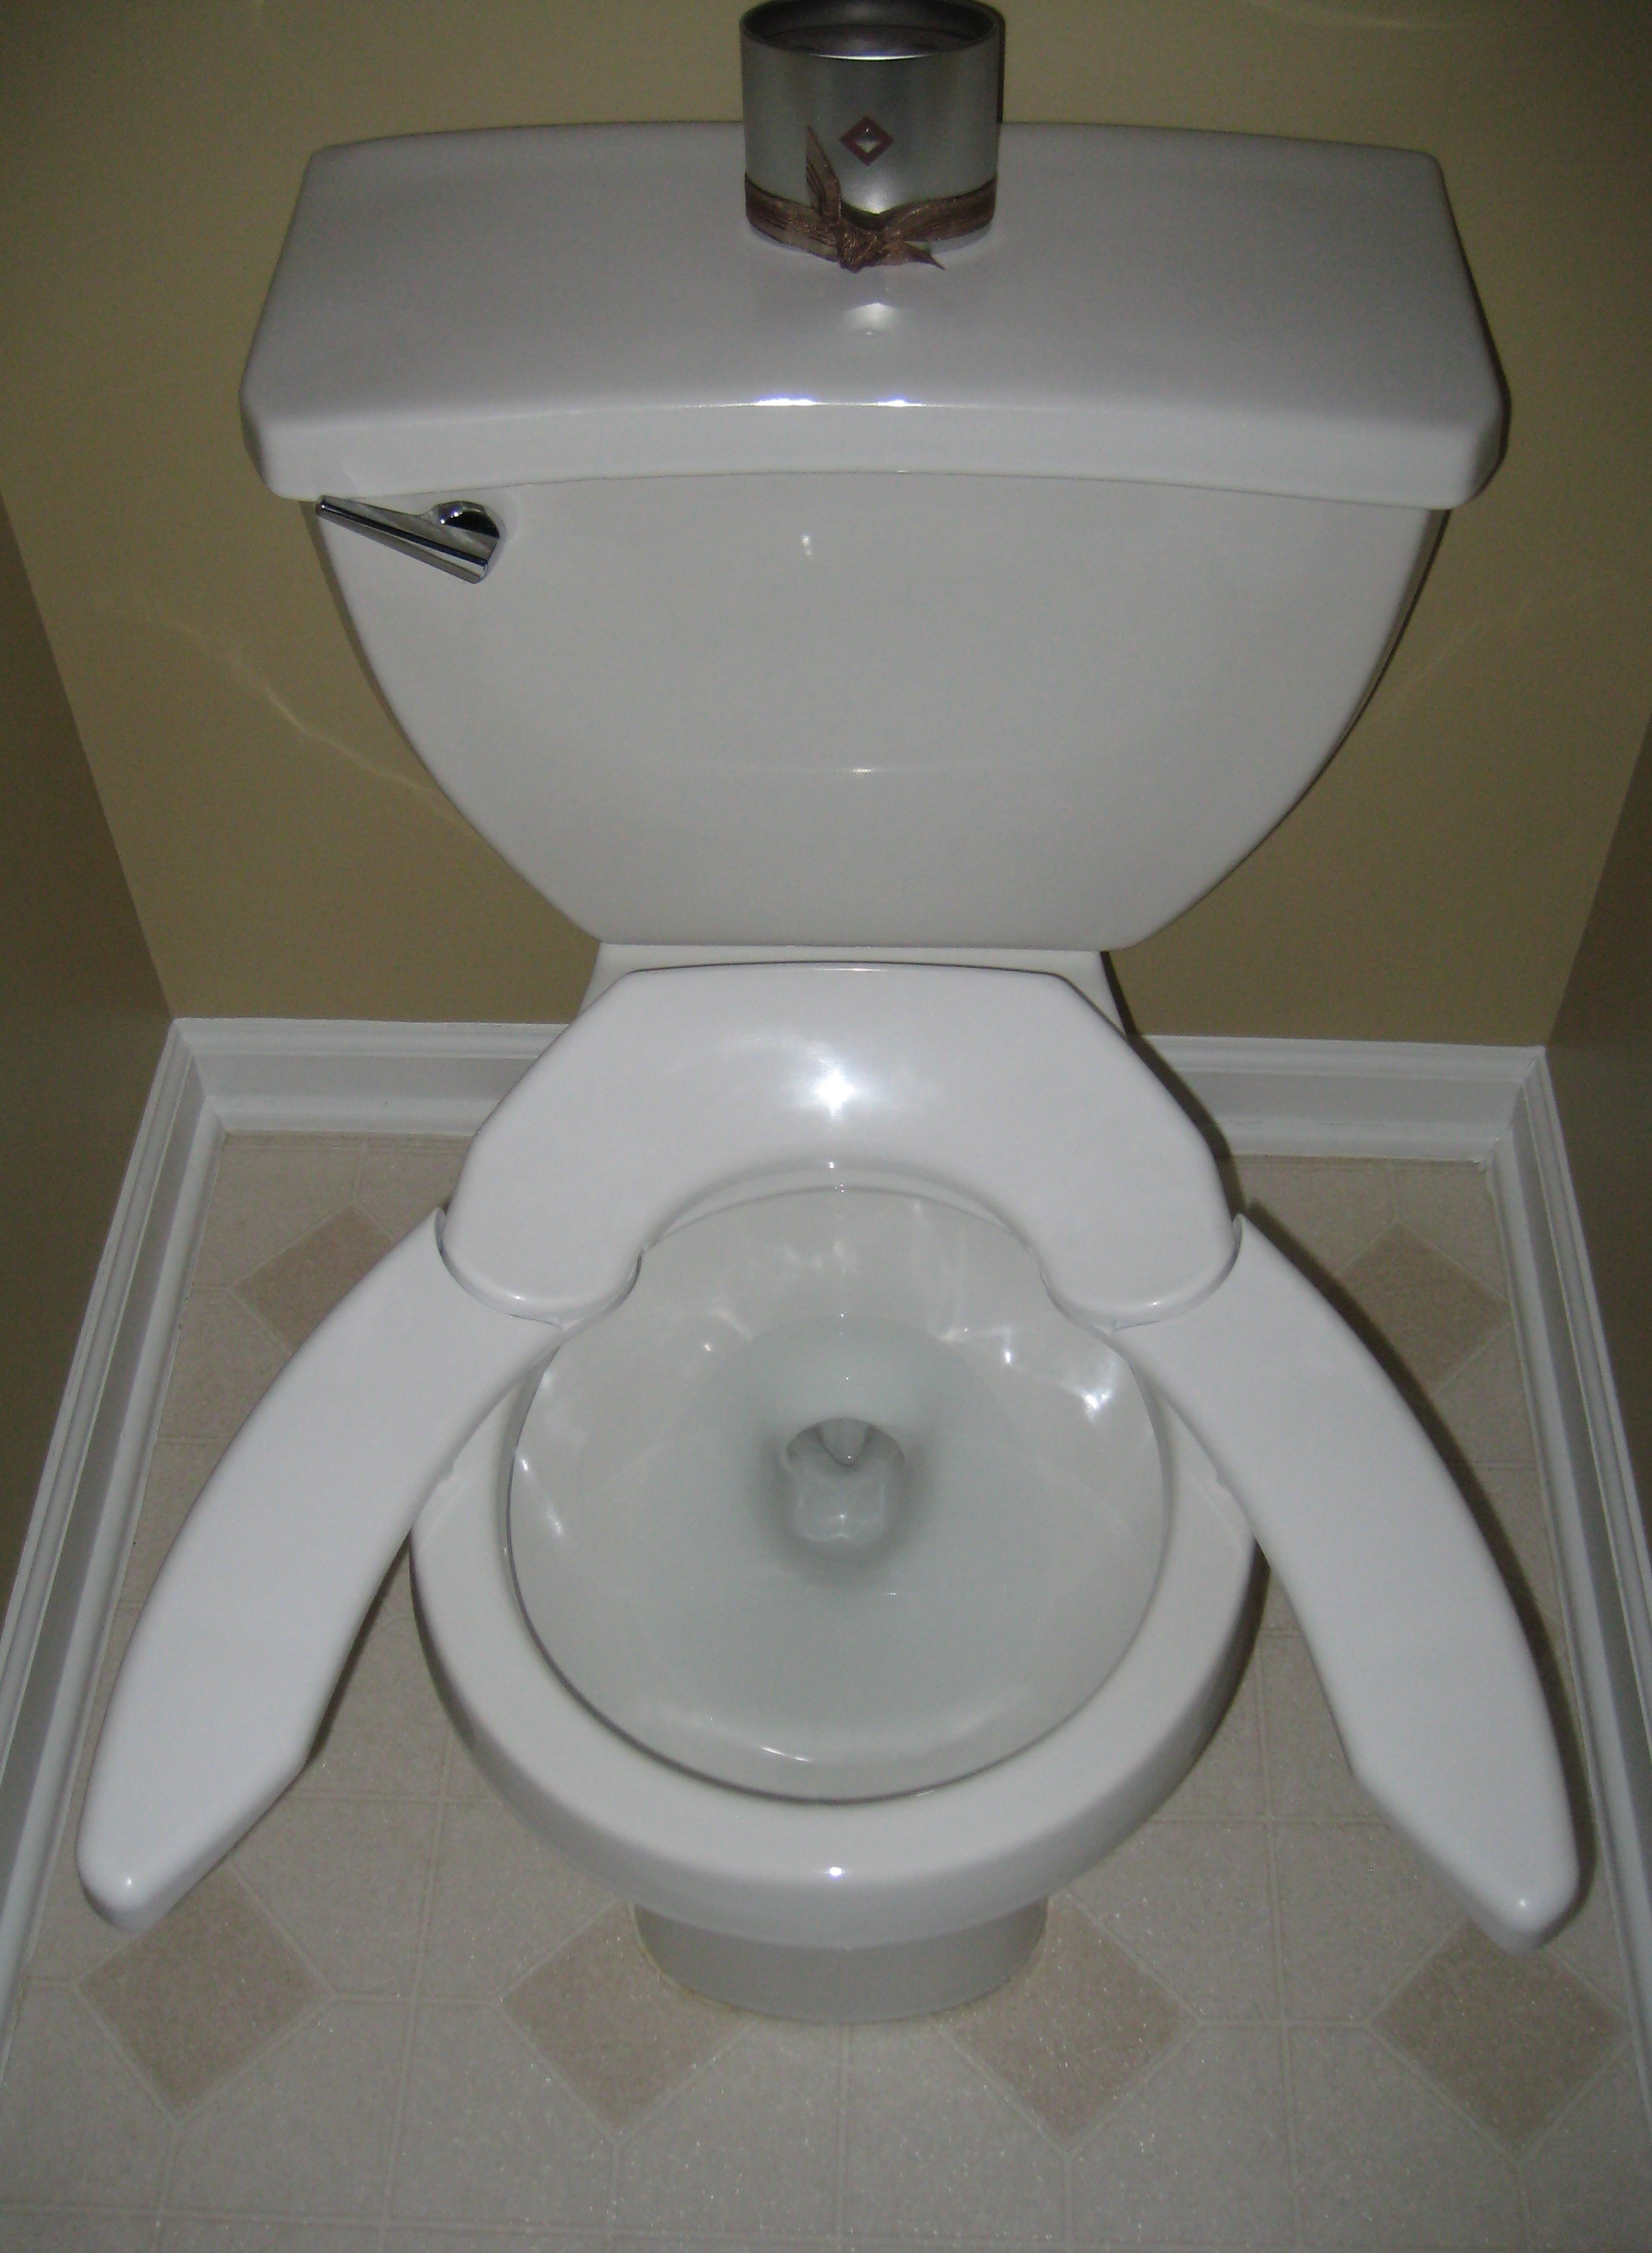 Round Vs Elongated Toilet Bowls Designs